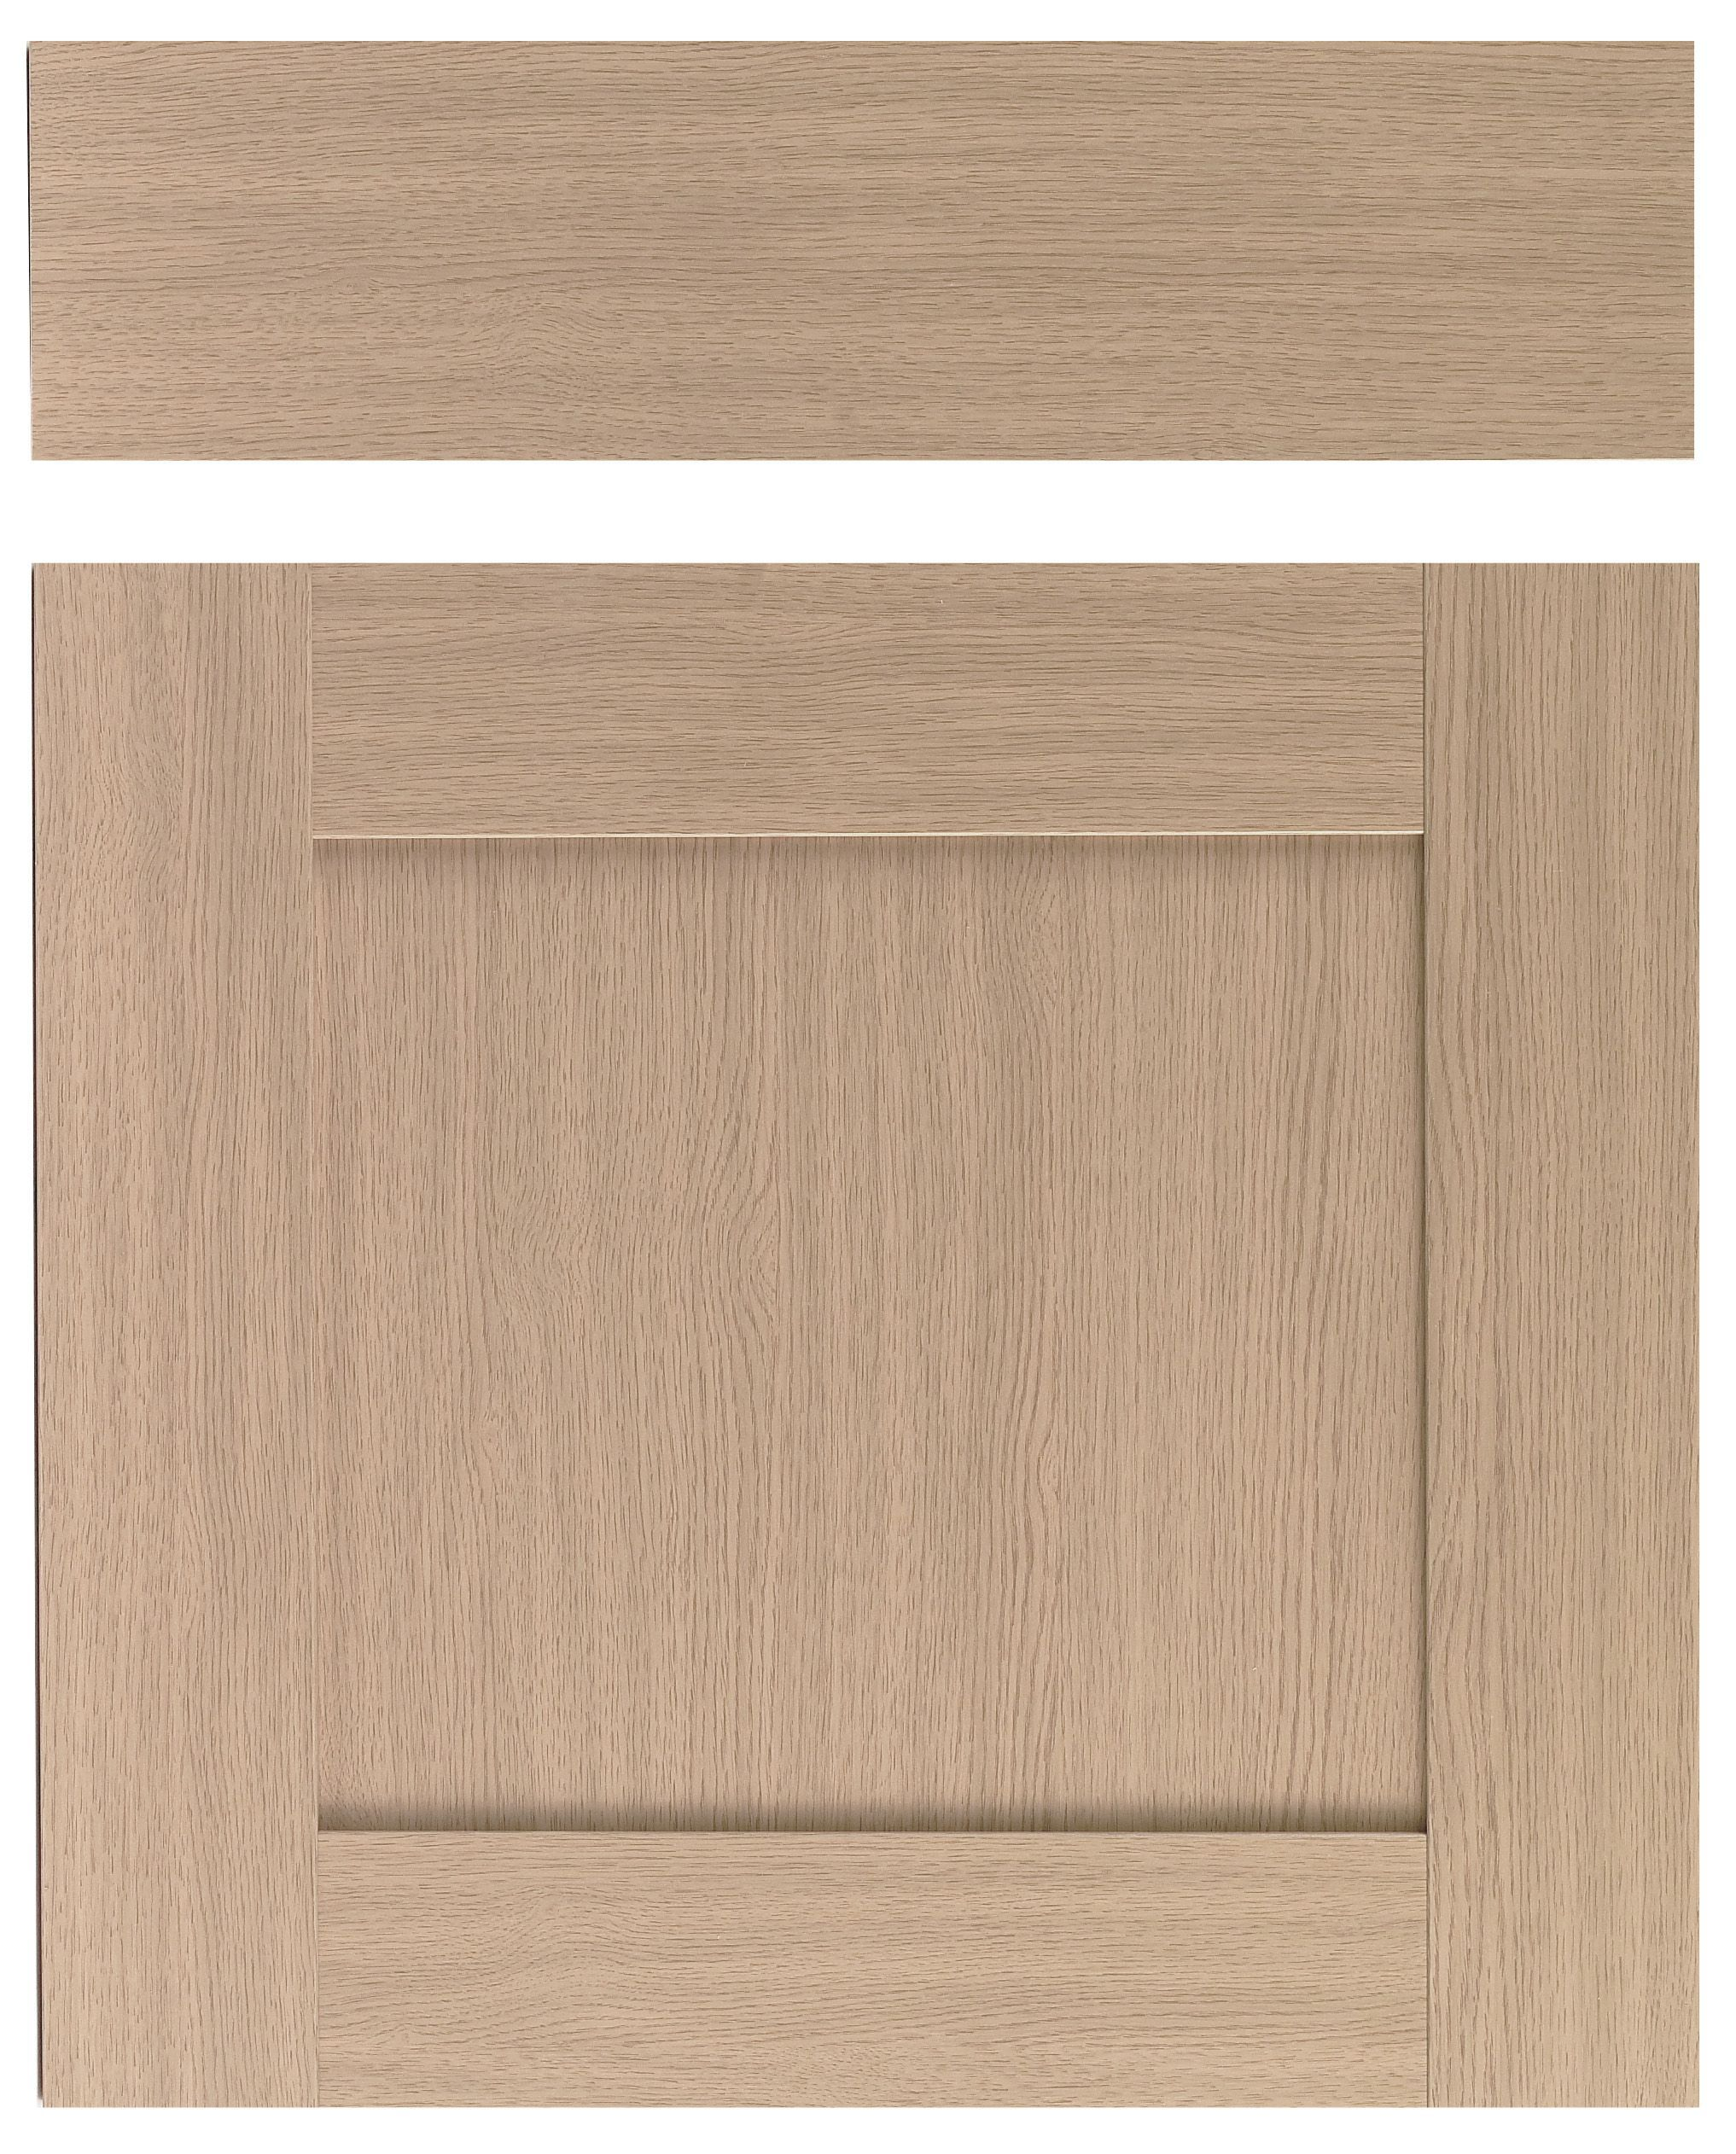 IT Kitchens Westleigh Textured Oak Effect Shaker